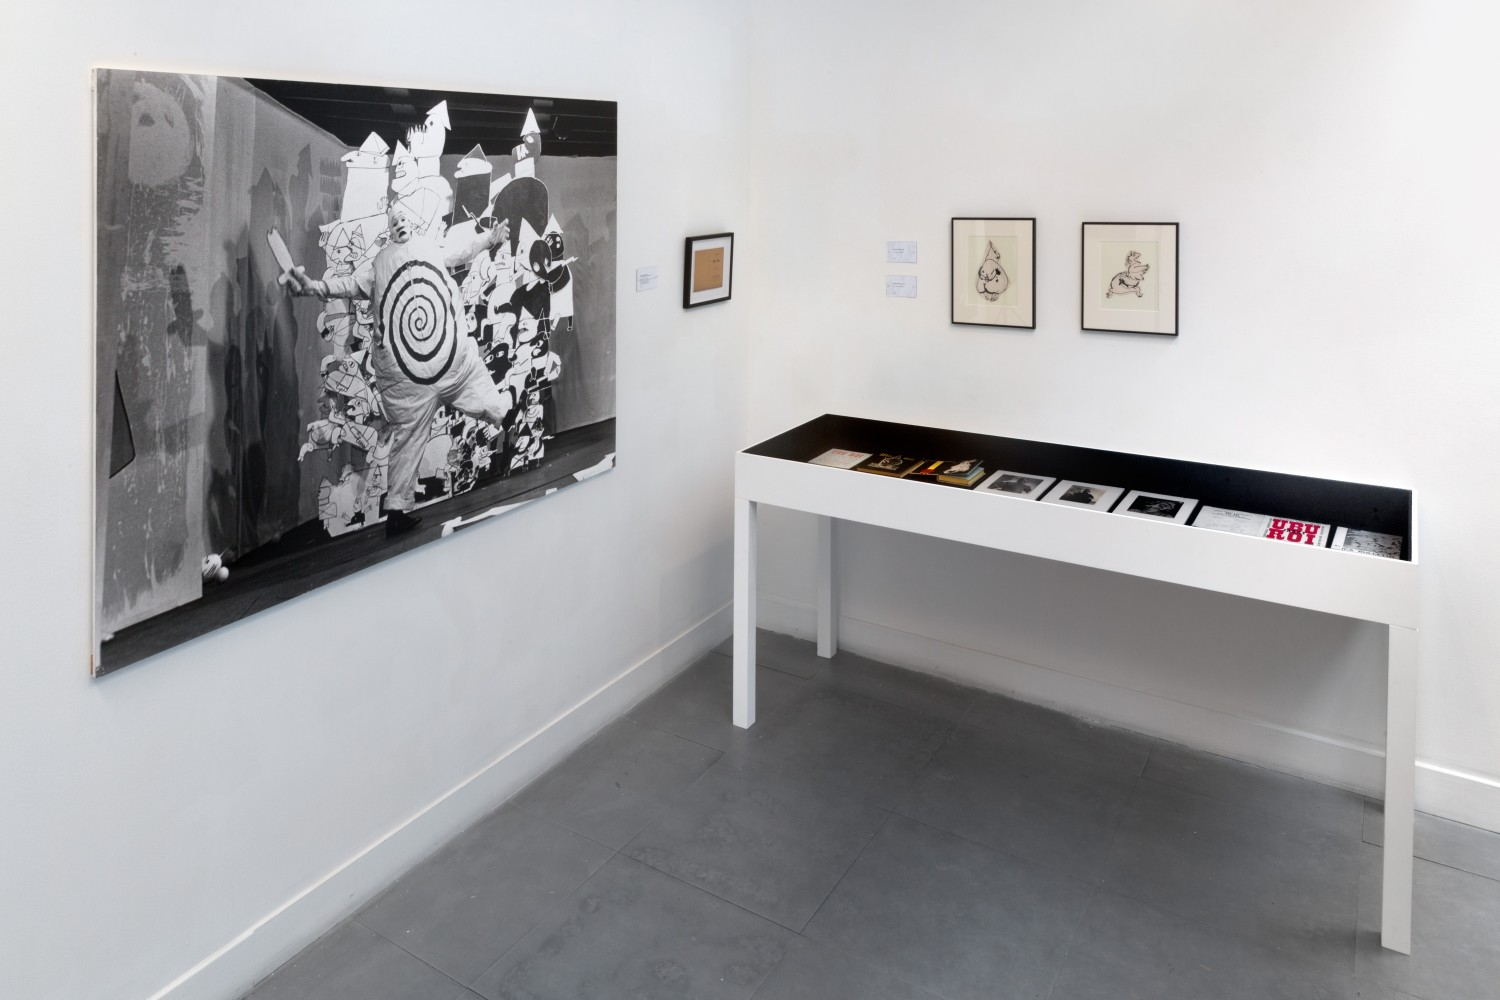 <p><span>Installation view,&#160;</span><i>Franciszka Themerson UBU</i></p><div>Photo by FXP Photography.</div>